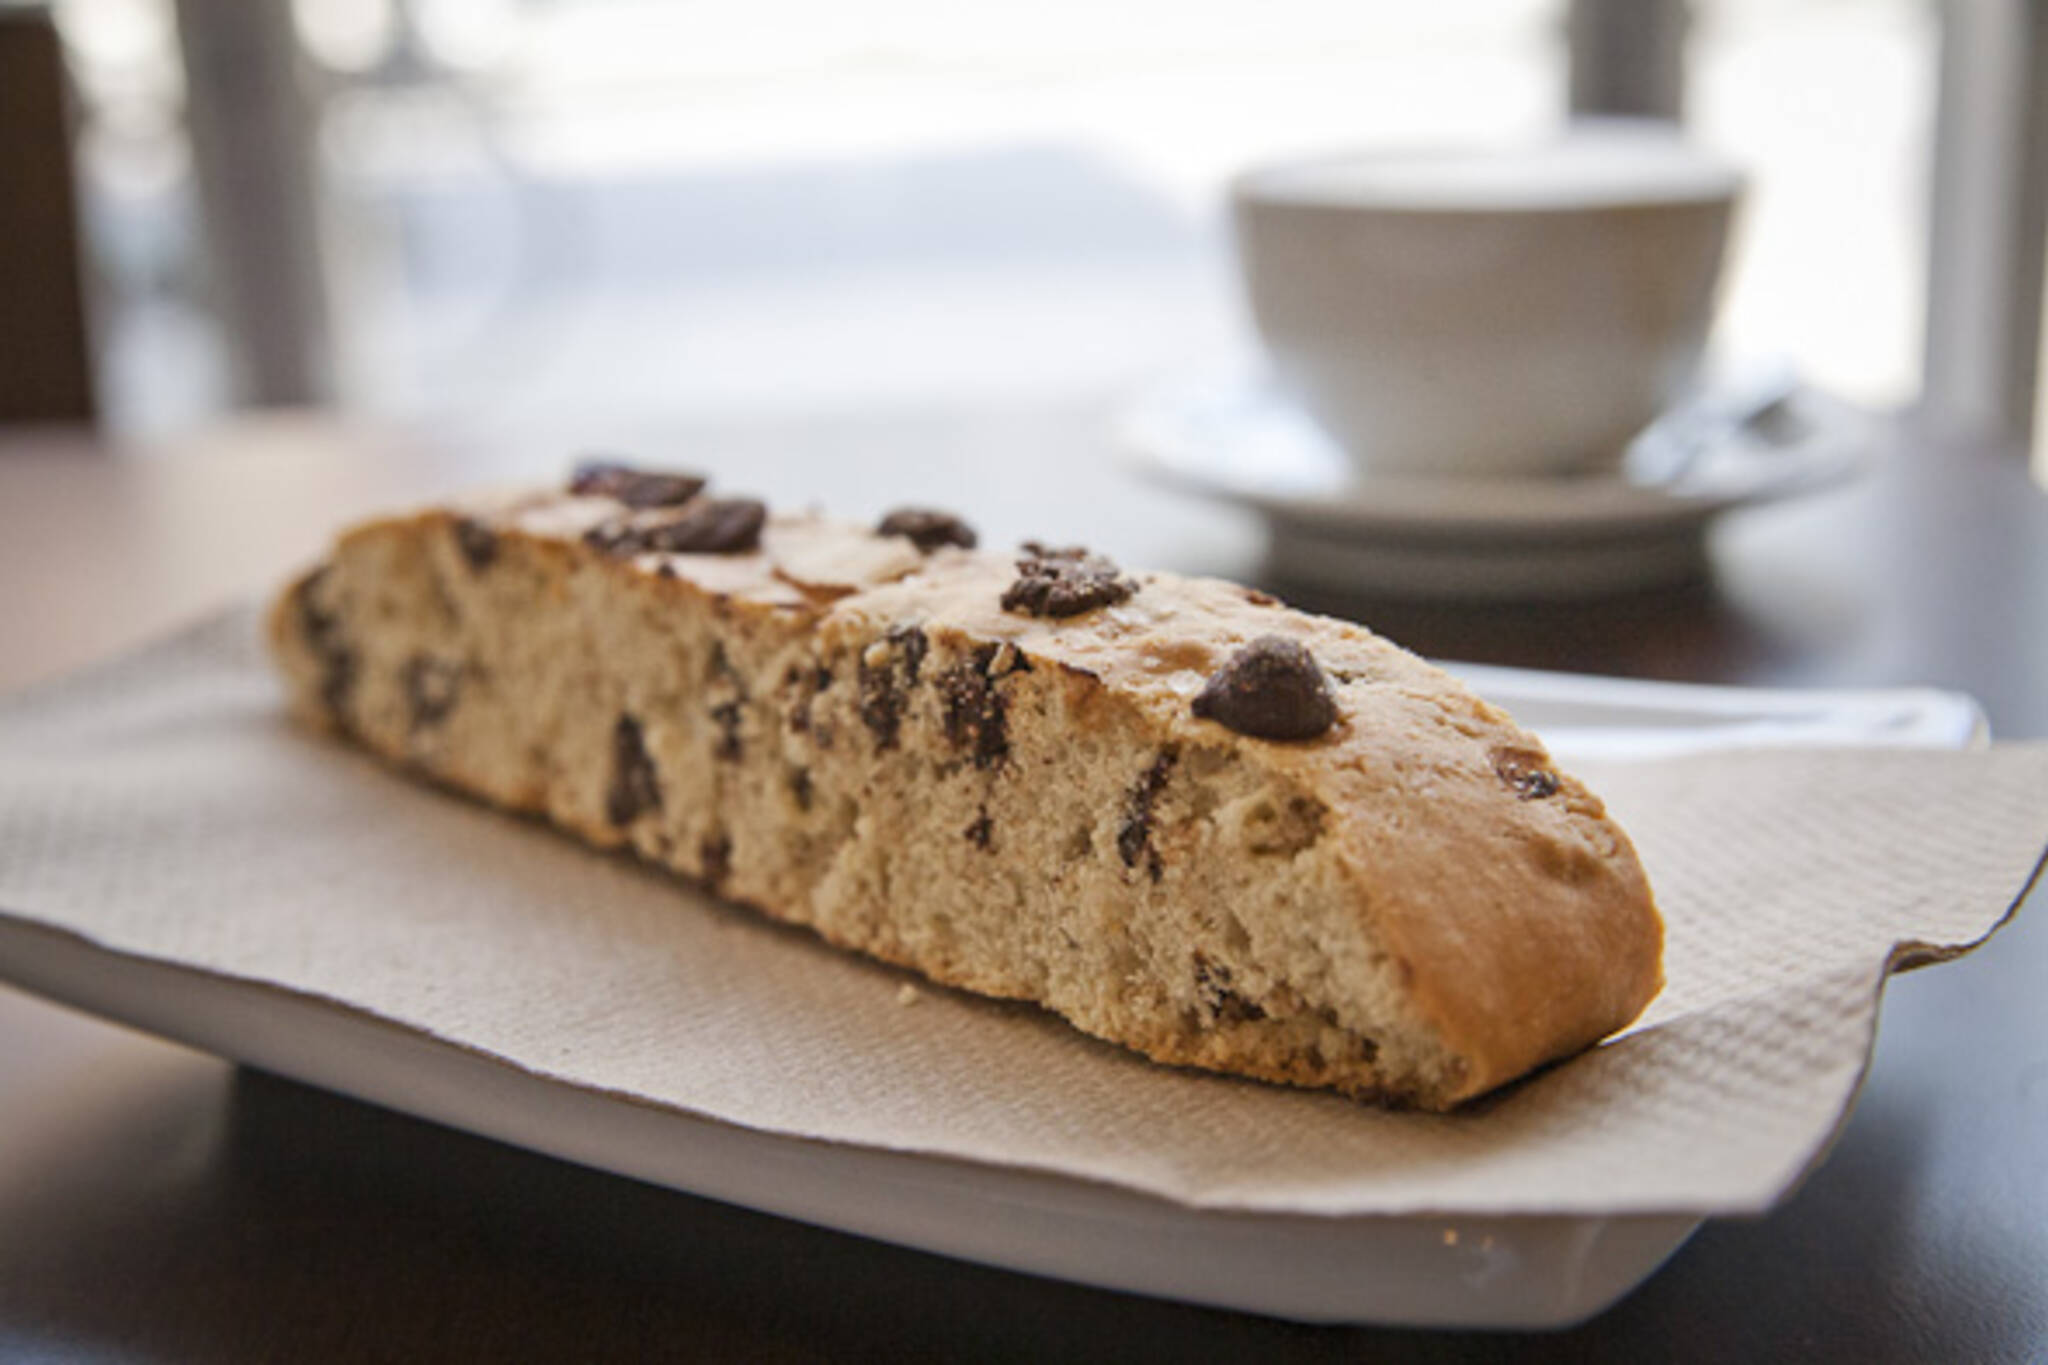 Toronto cafes baked goods